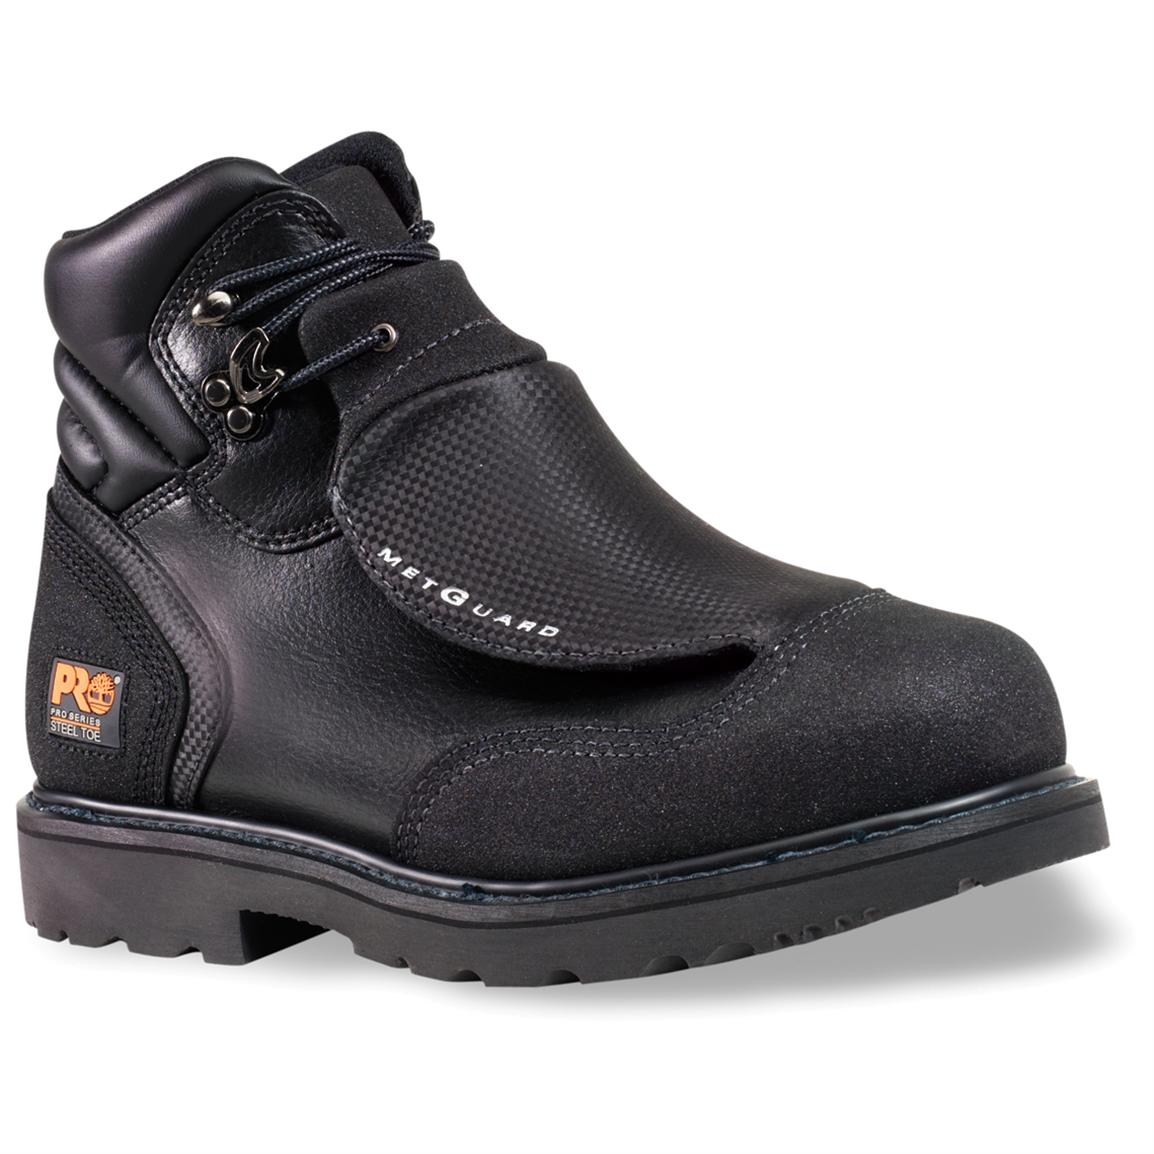 Men's Timberland® Pro® 6 inch Steel Toe Met Guard Boots, Black